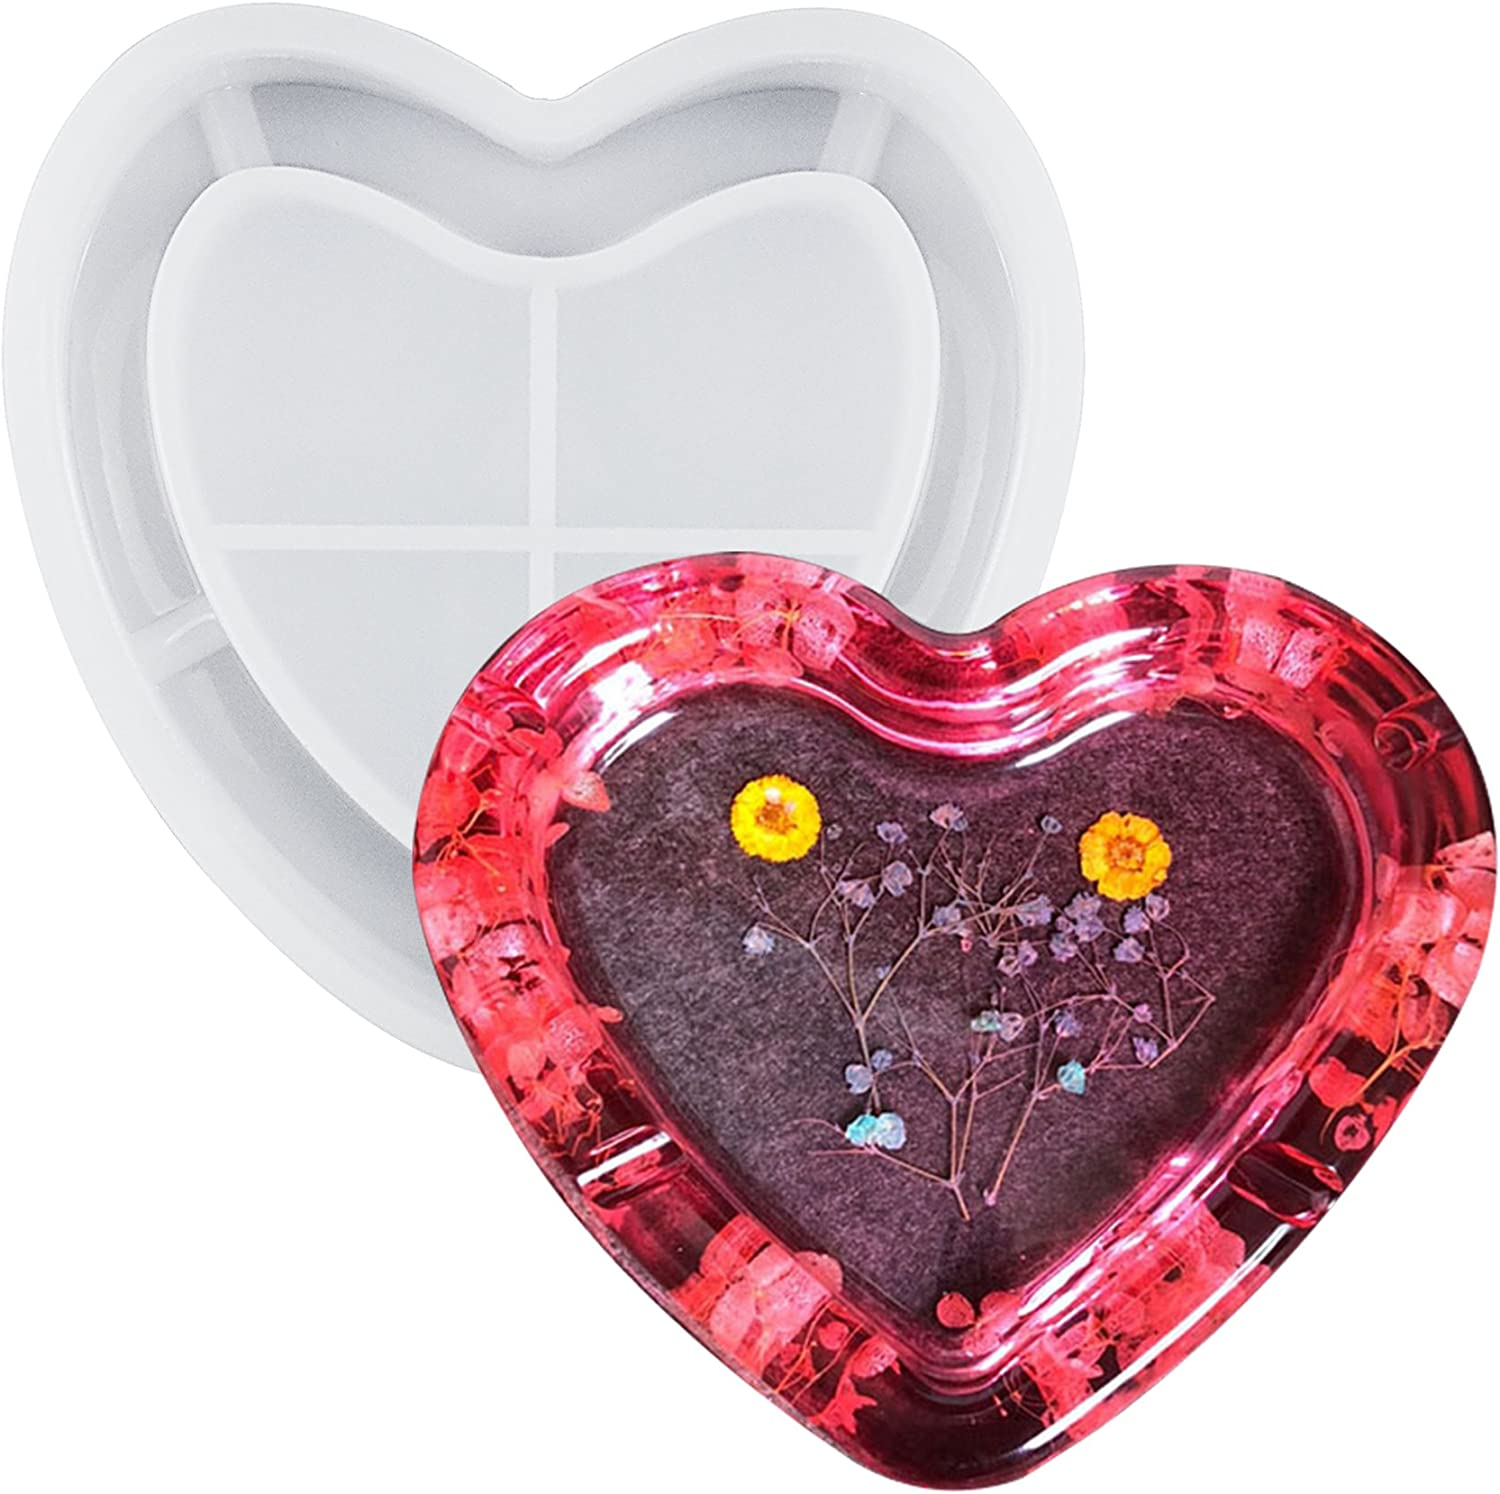 musykrafties 6.3 Heart Ashtray Resin Silicone Mould for Polymer Clay Resin Epoxy Crafting Projects Large